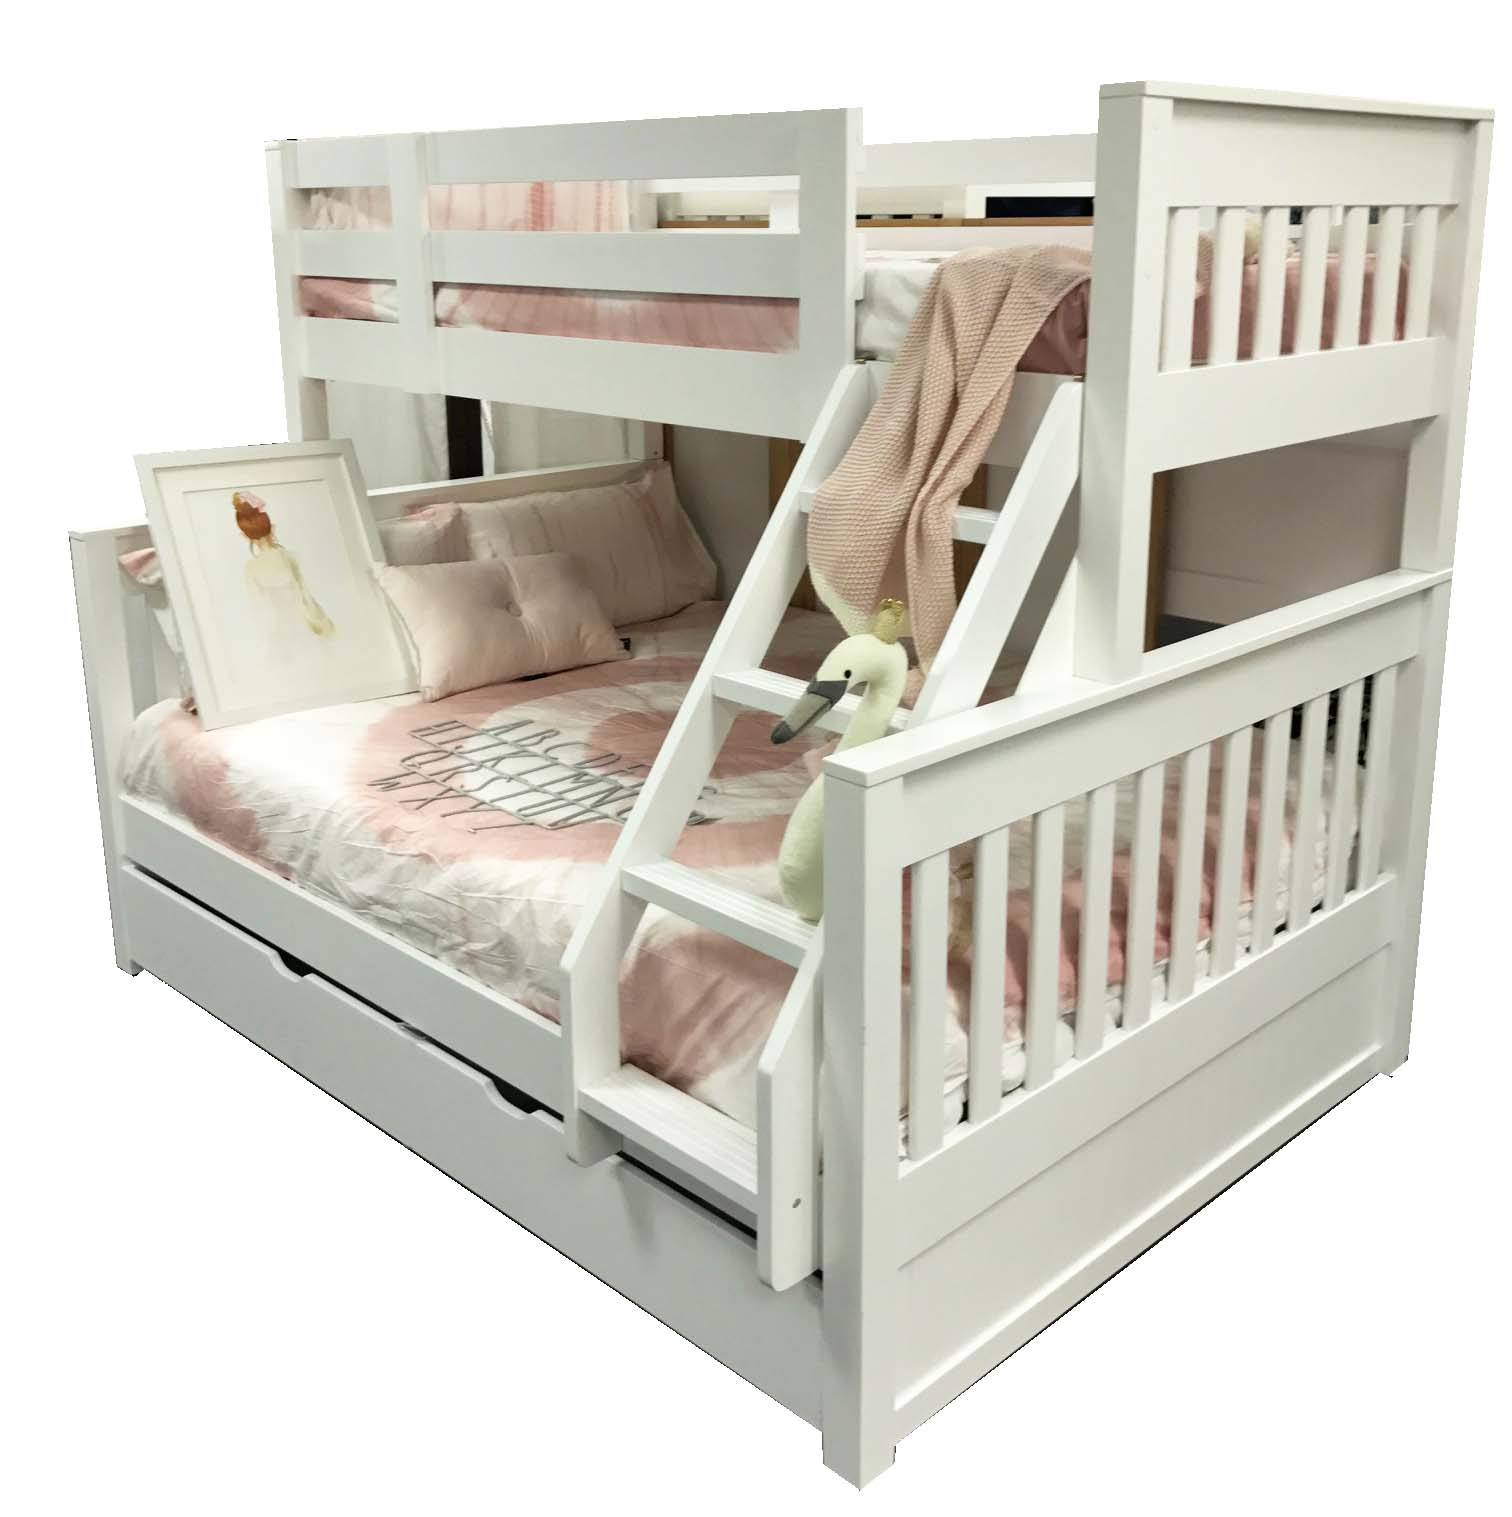 Tweepersoons Stapelbed Riley Single Over Double Bunk Inc Trundle In Stock Ready